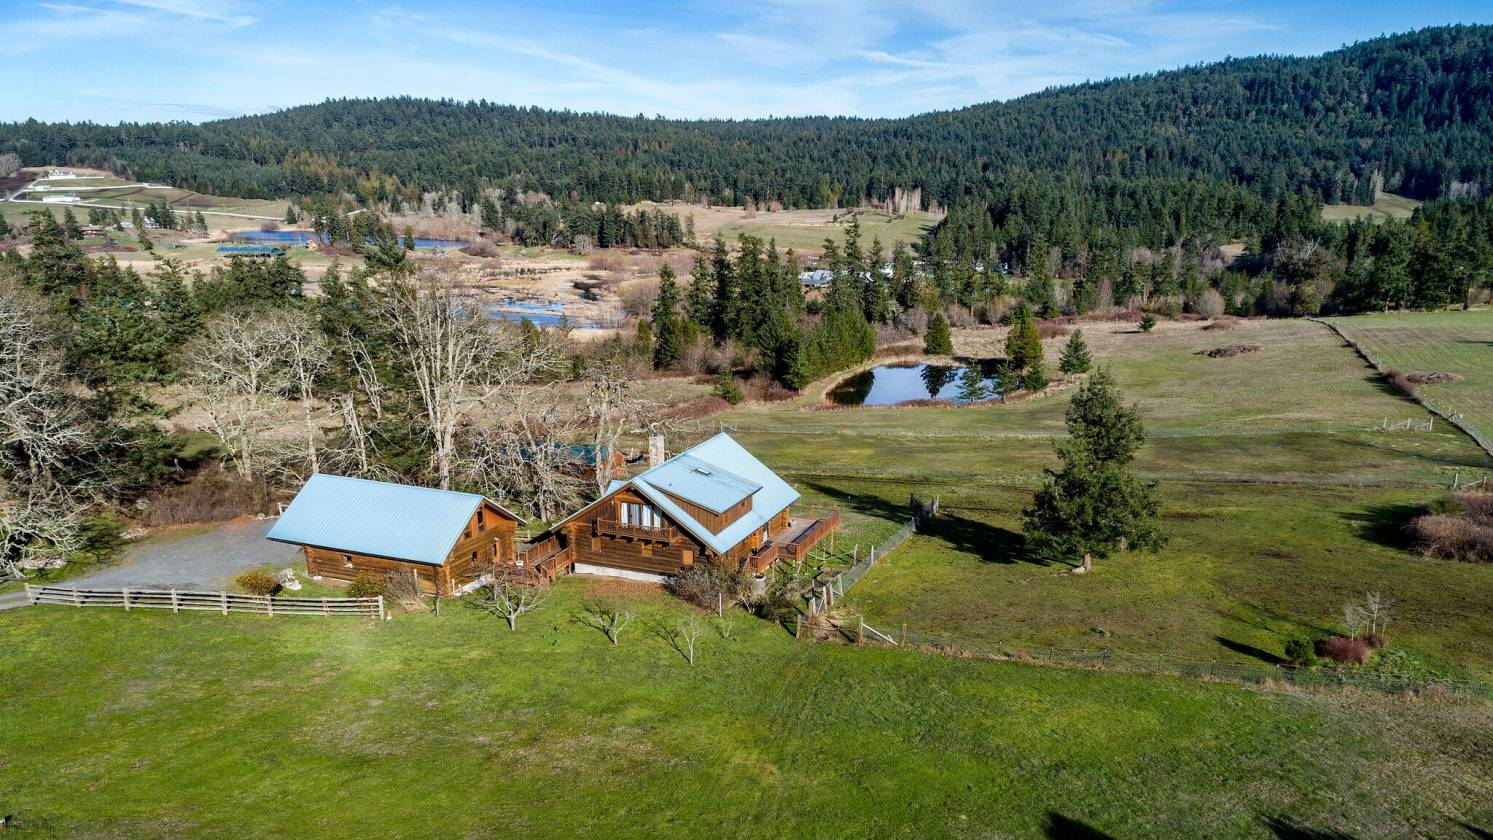 Previous Beautiful Log Home on 9 acres